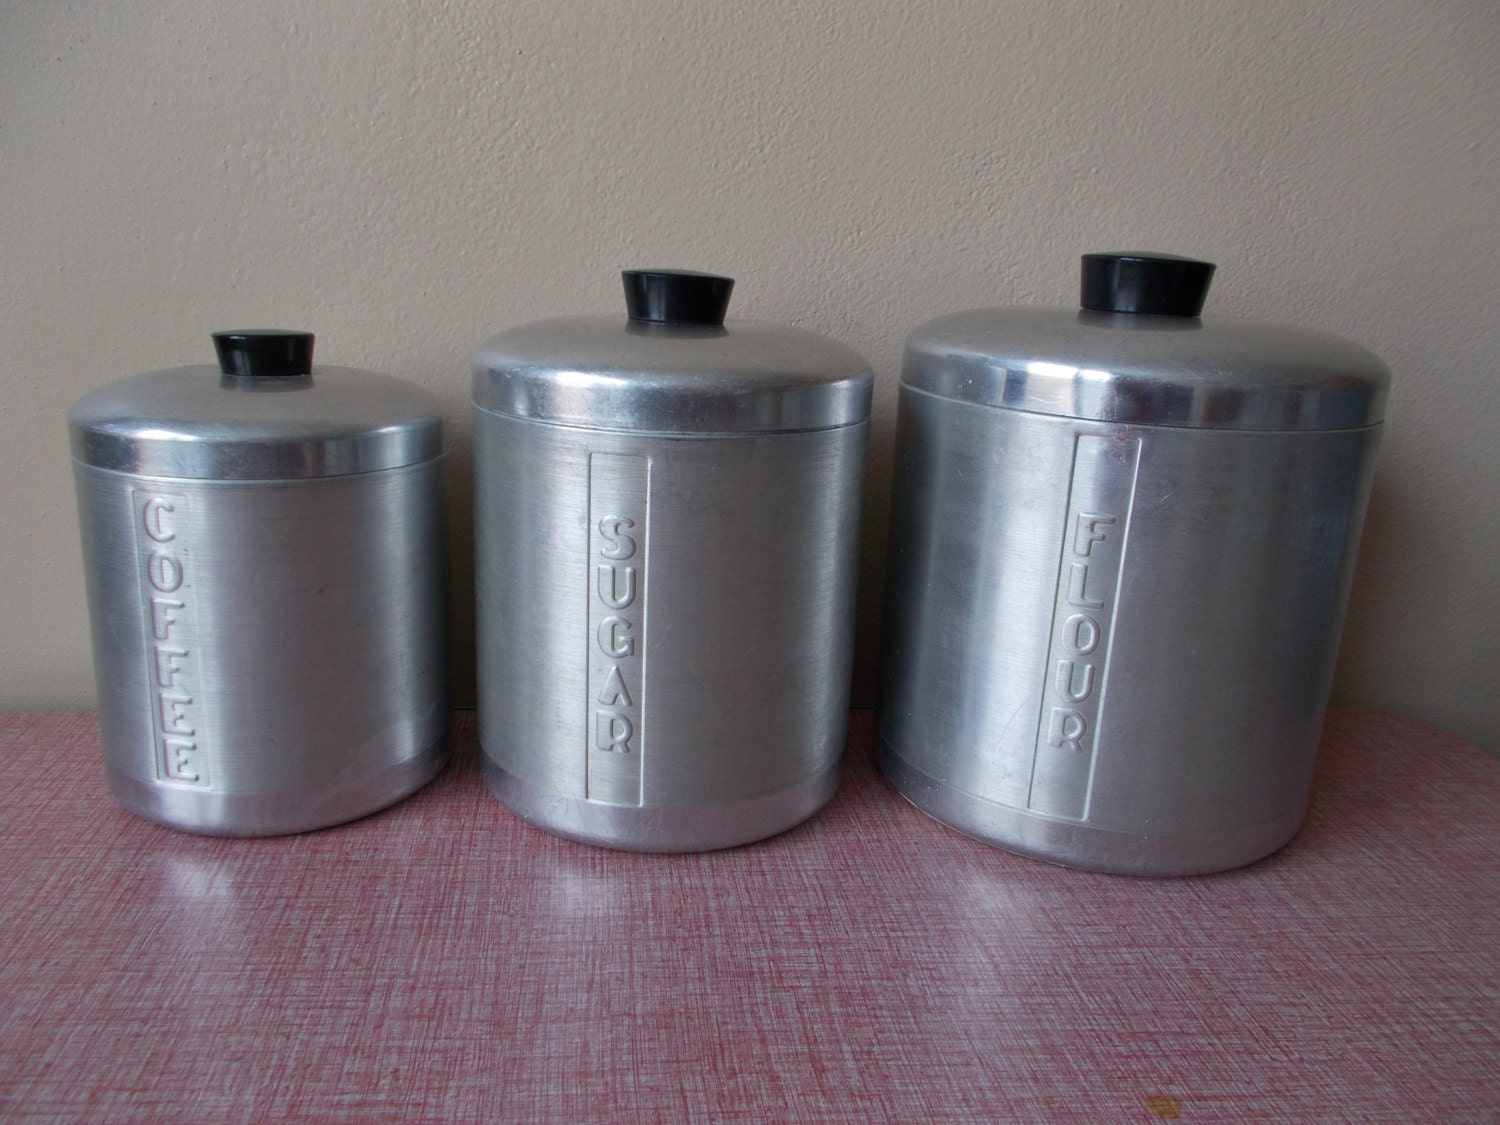 Retro Kitchen Aluminum Canister Set By Sewupcycle On Etsy